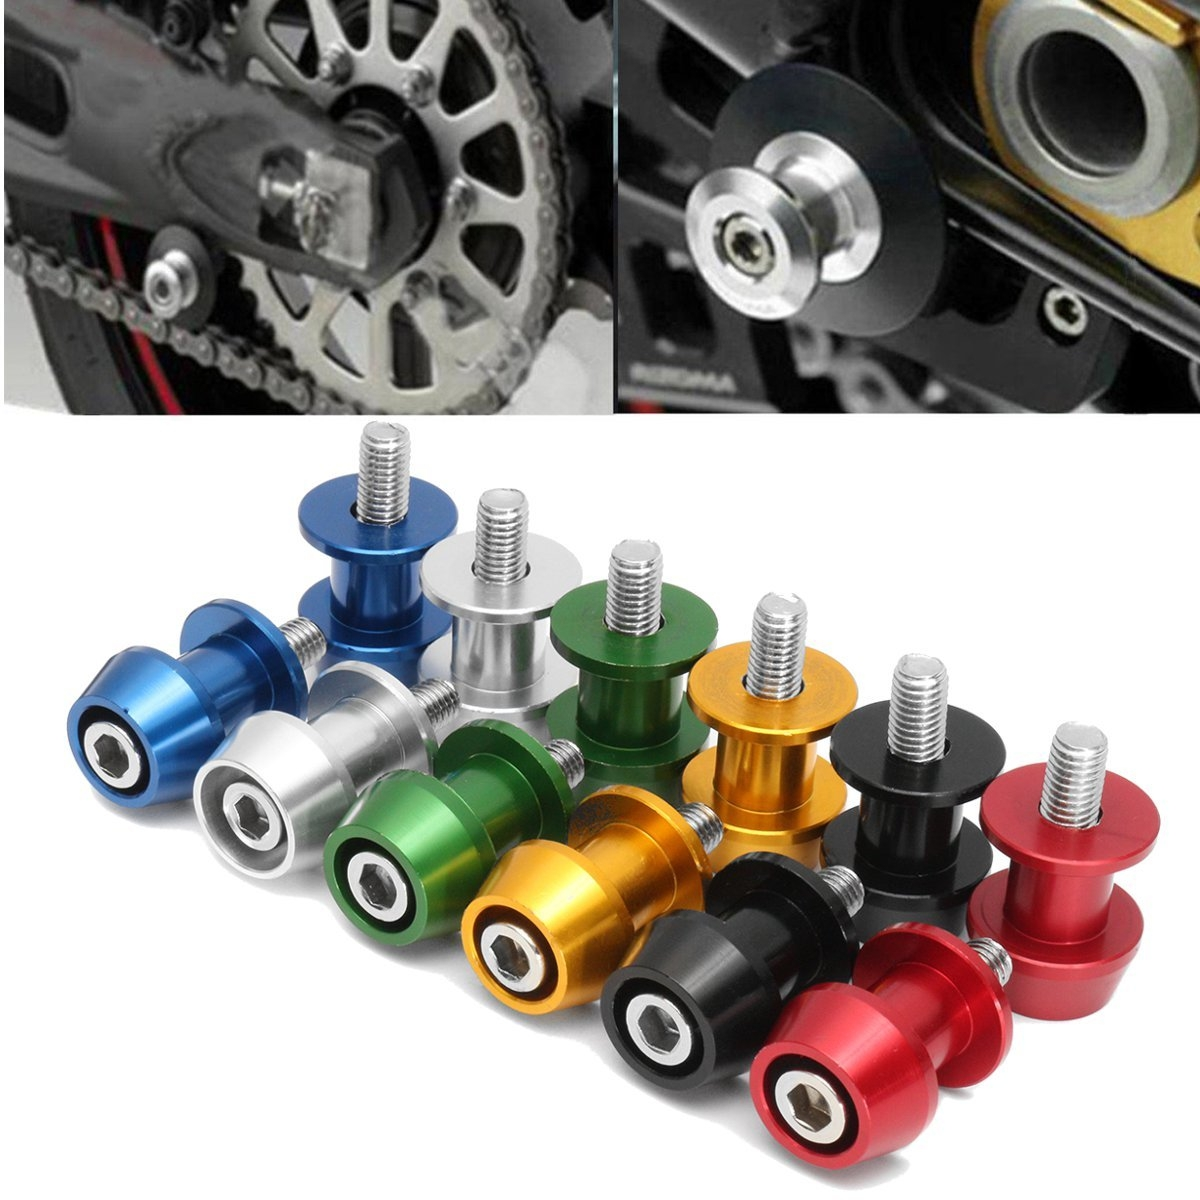 8mm Red Motorcycle Swingarm Swing Arm Spools Sliders Stand Bobbins for CBR1000RR